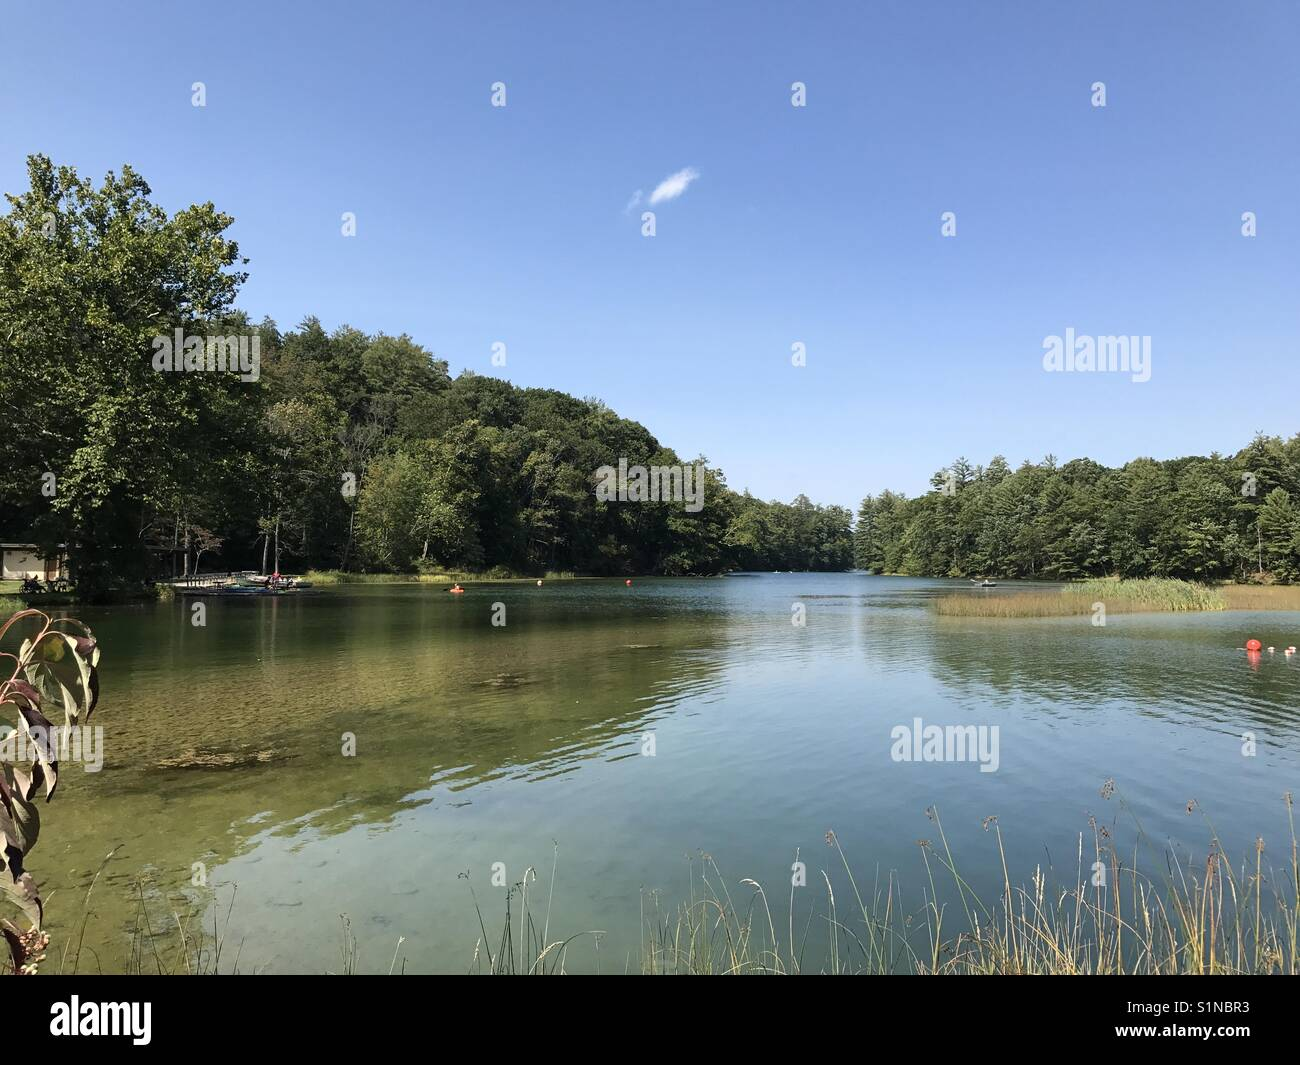 Boaters on the lake - Stock Image